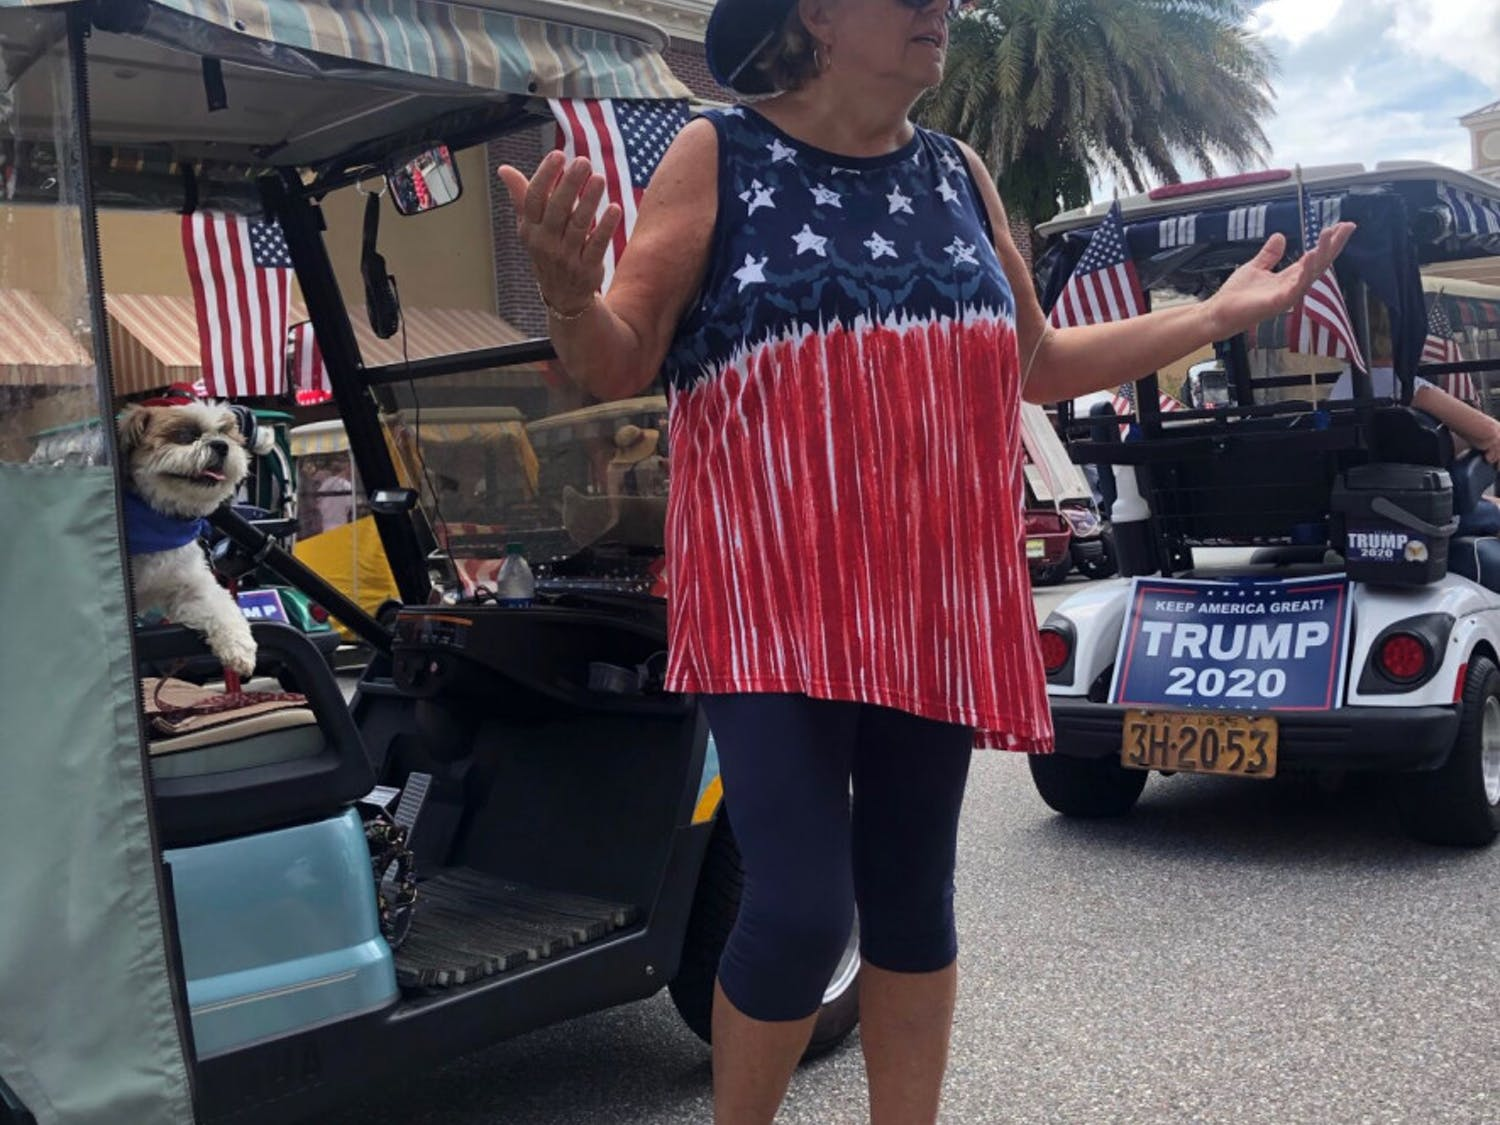 Kathy Slattery, 69, and her dog Samson, 8, waited to enter the event in a line of golf carts waving Trump flags.